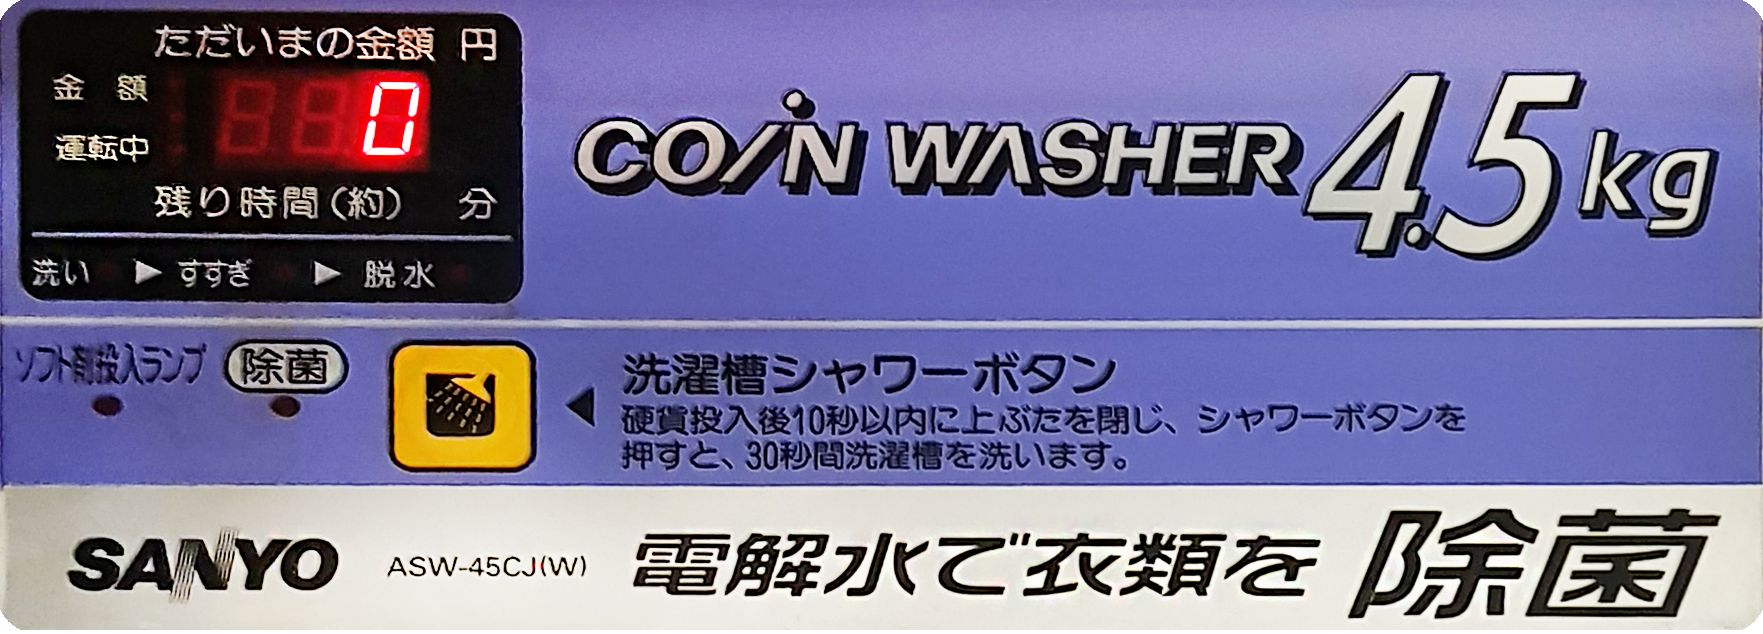 Coin Washer